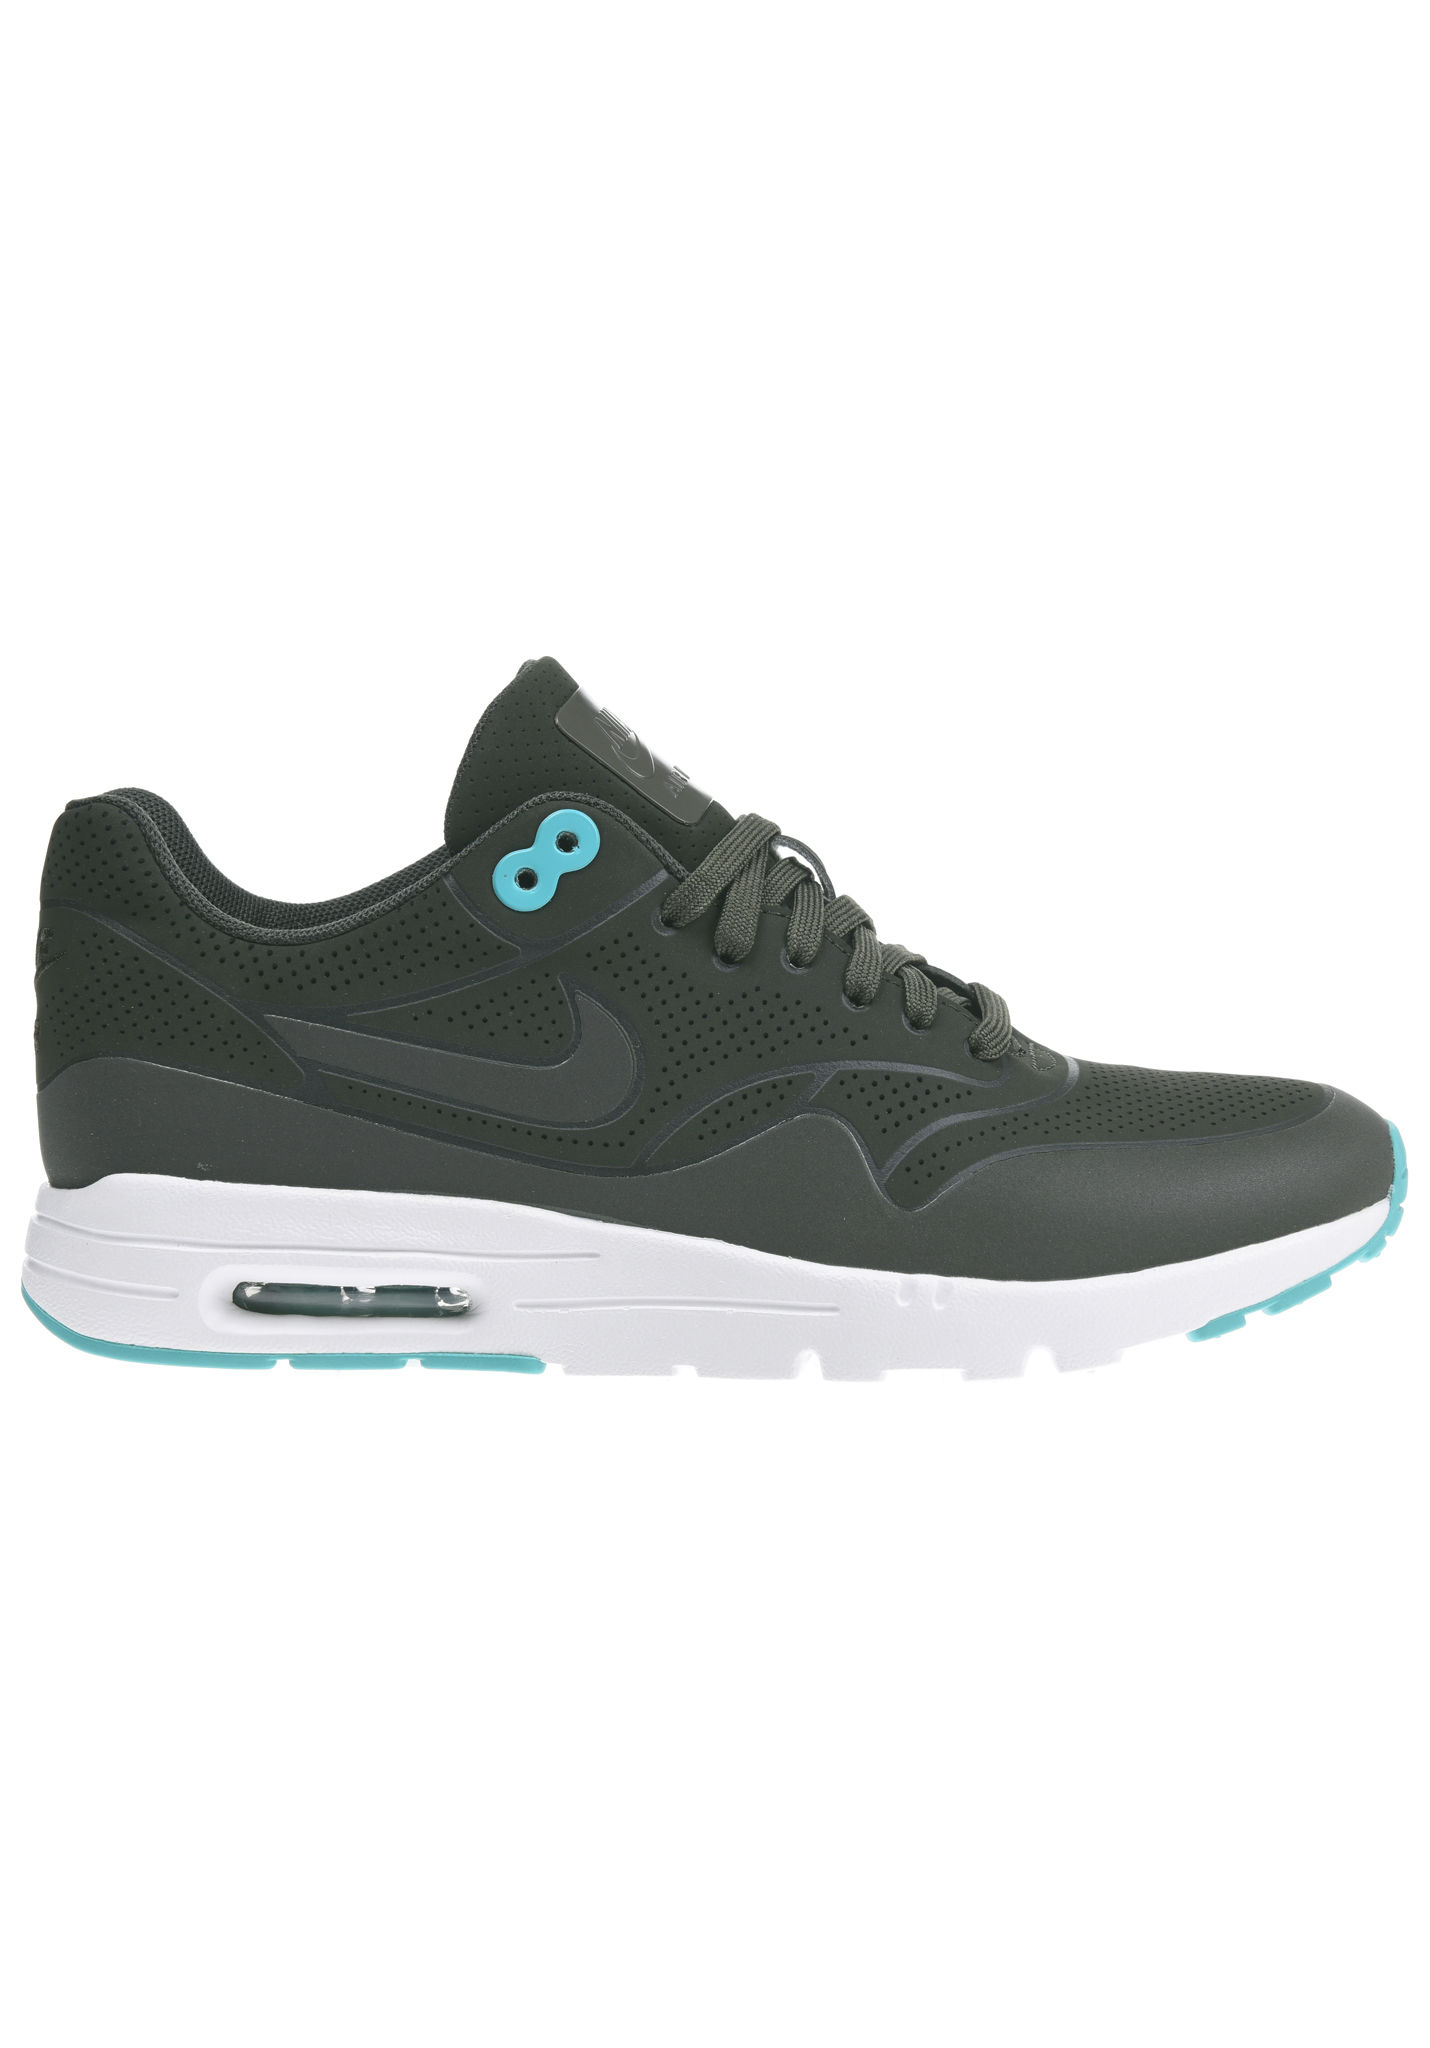 huge selection of 8b3a1 0d909 NIKE SPORTSWEAR Air Max 1 Ultra Moire - Sneakers for Women - Green - Planet  Sports